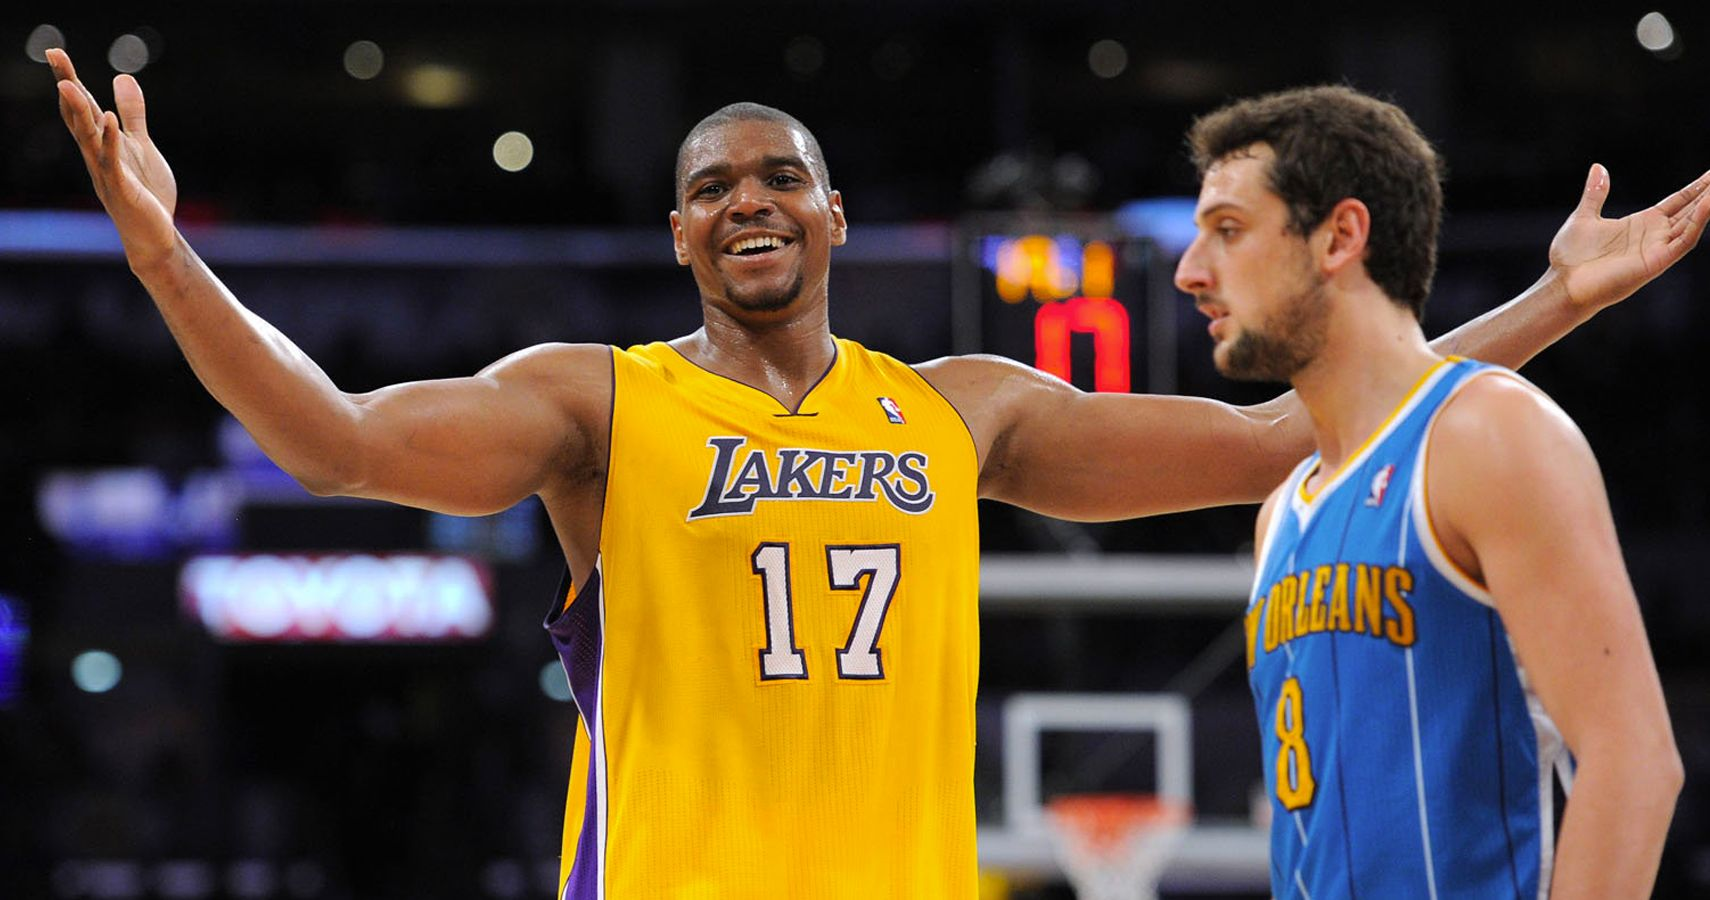 87f8d7e40c3 Andrew Bynum Wants To Make NBA Comeback After 4 Years Away From League